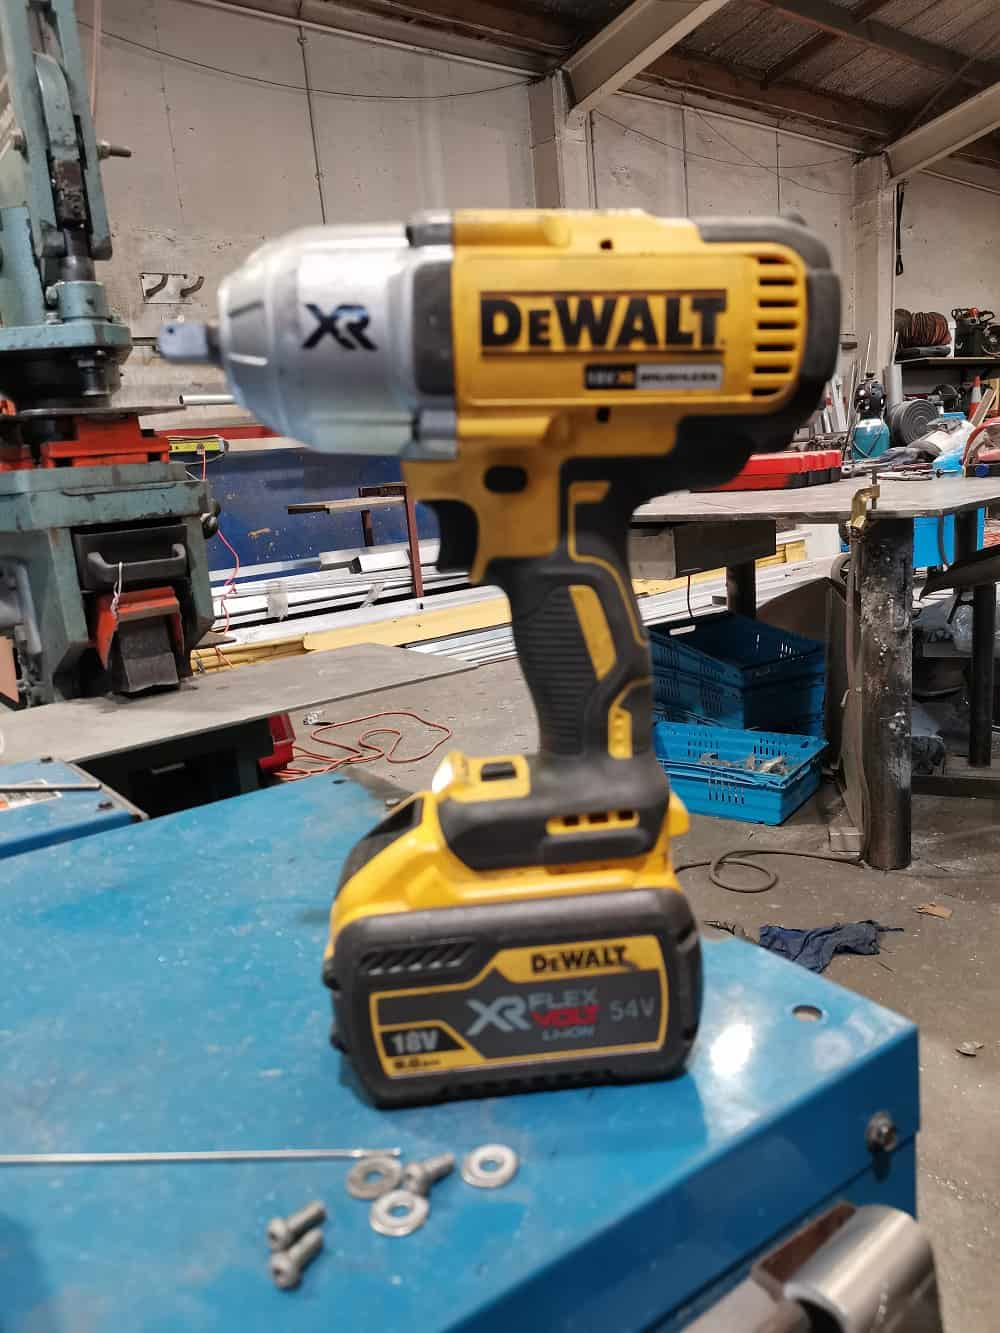 The Dewalt cordless impact wrench in the workshop